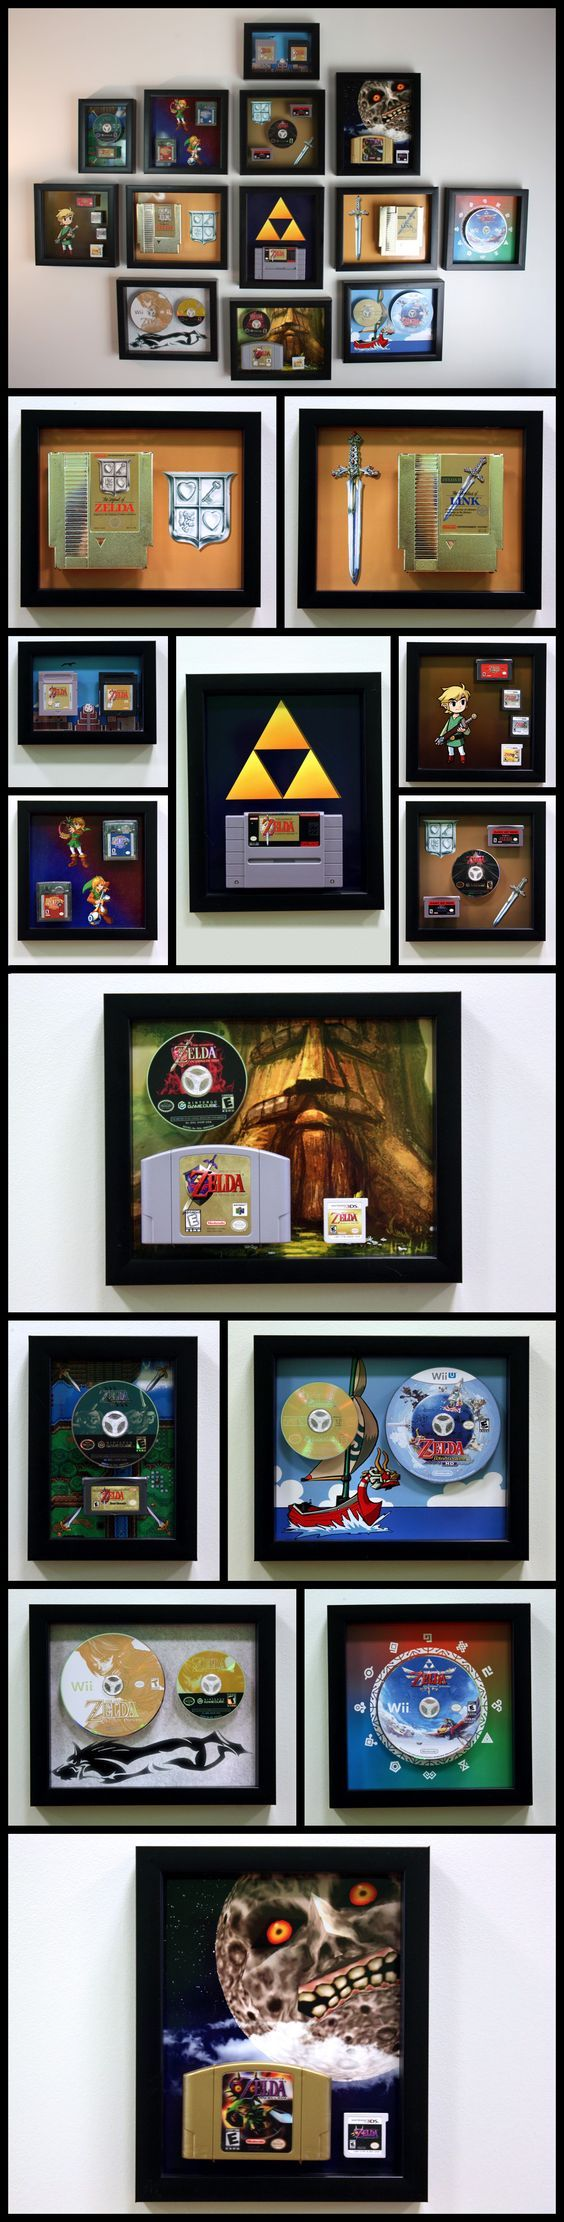 The entire Legend of Zelda video game series, mounted on the wall using custom 3D printed cartridge mounts. Creative display. linkedtothewall.com/: